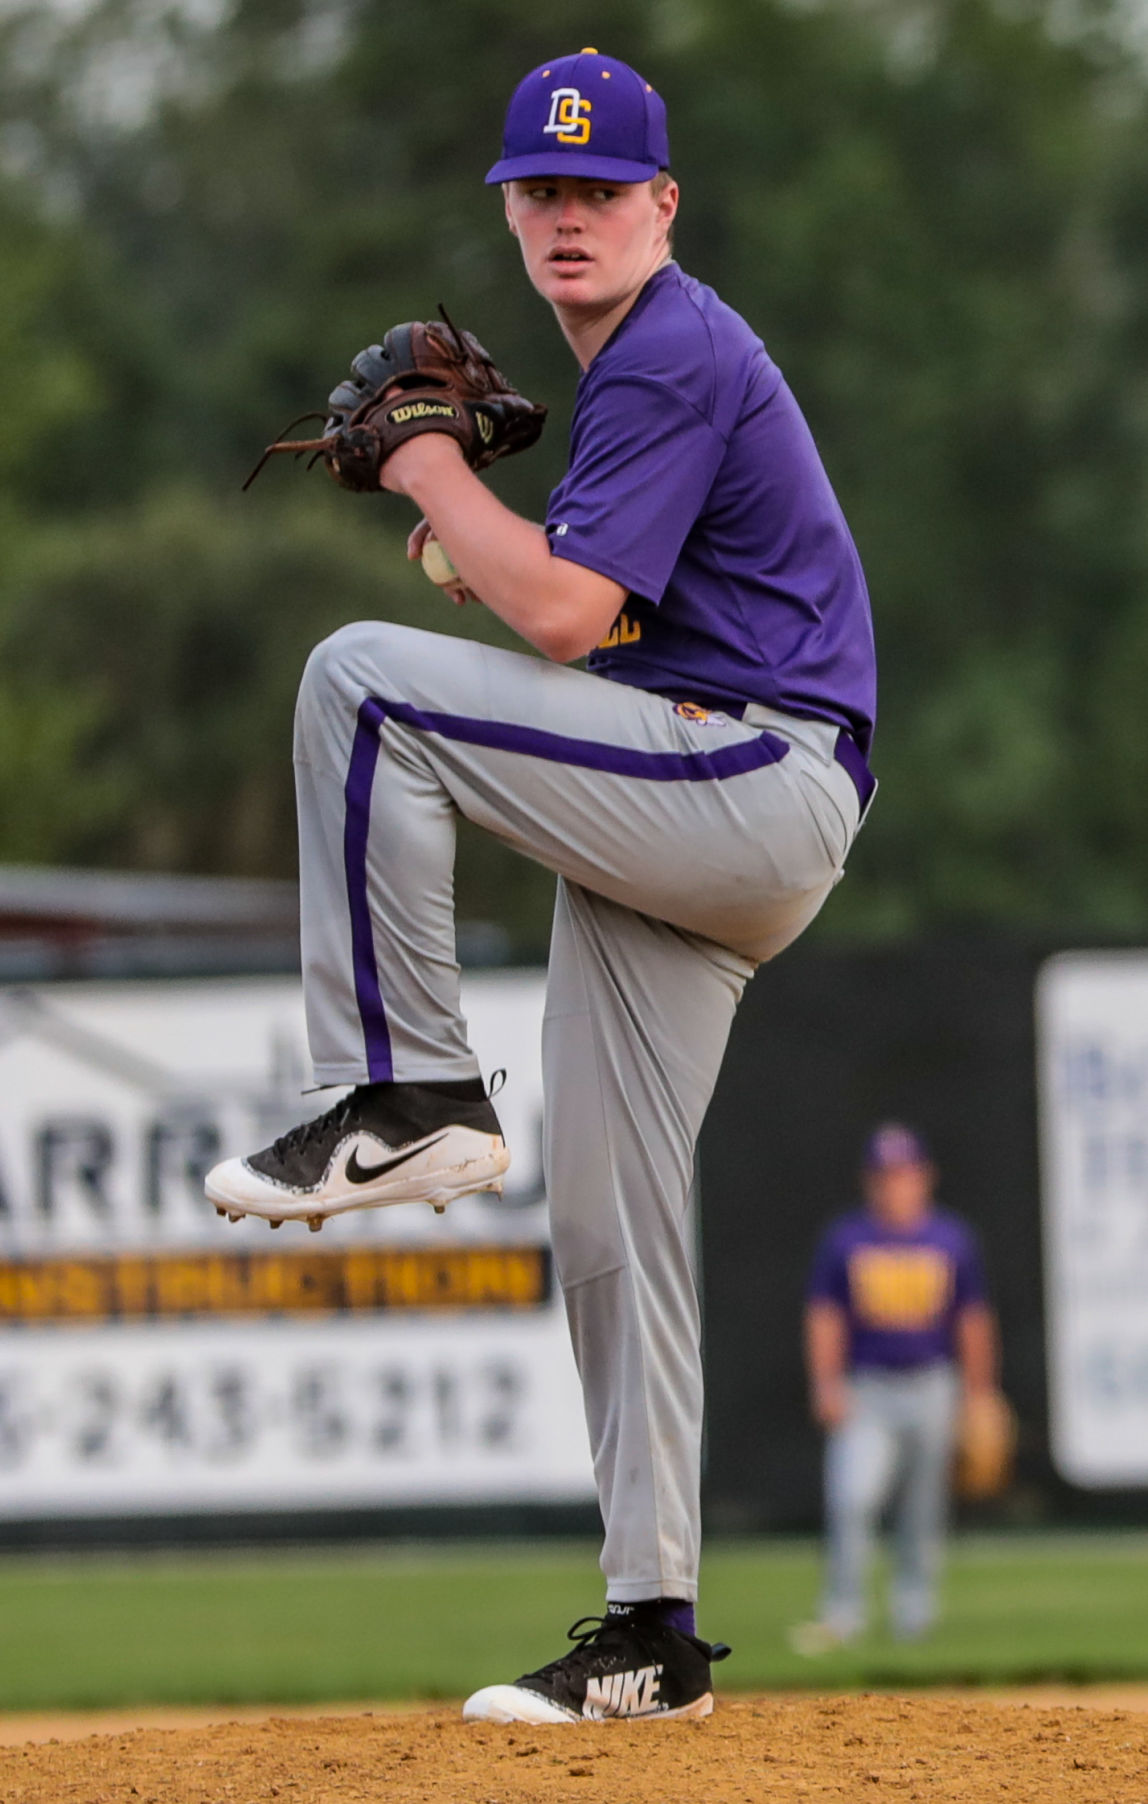 Walker at DSHS baseball Dalton Diez